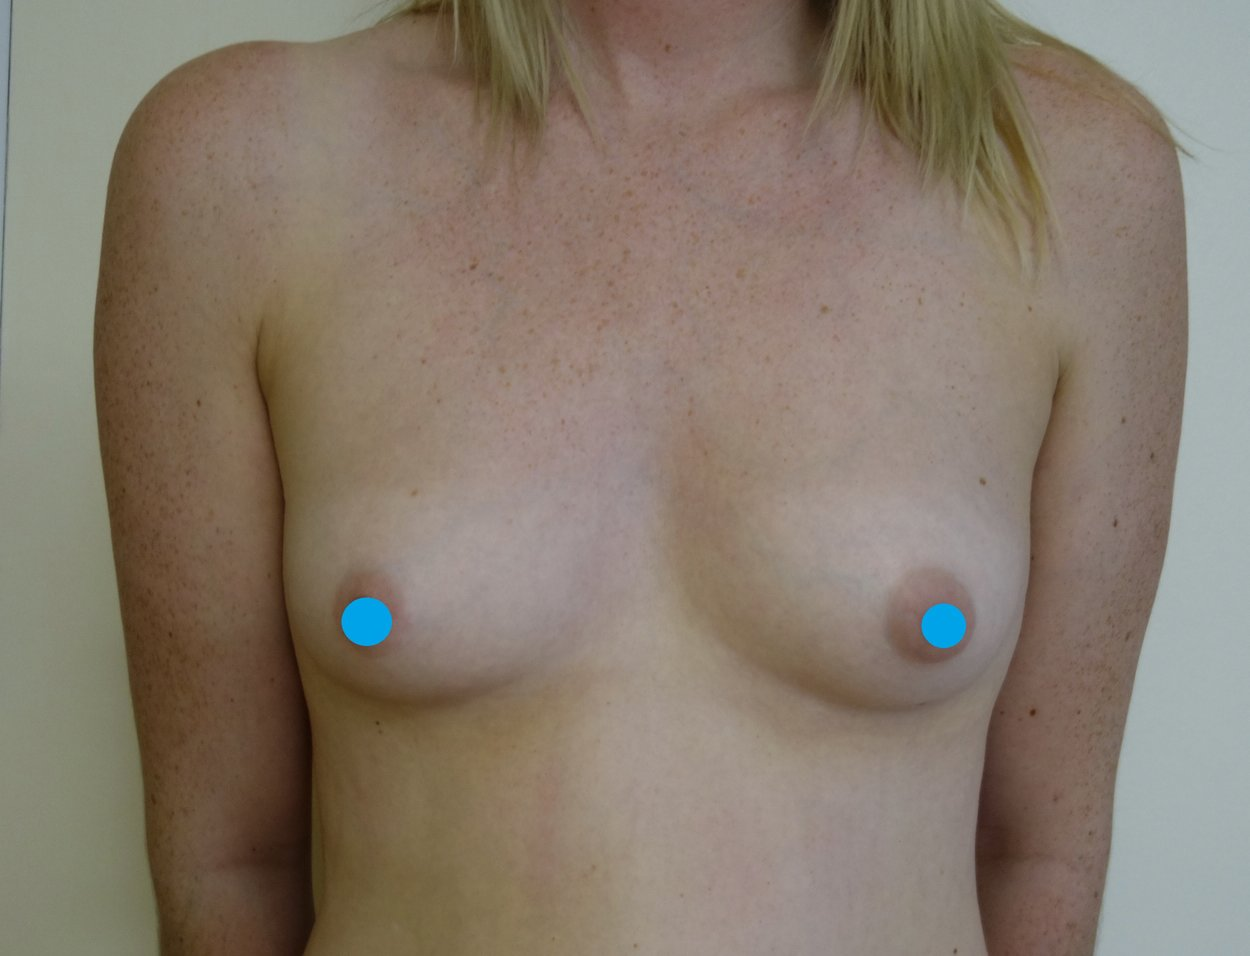 Before-Breast Augmentation Surgery